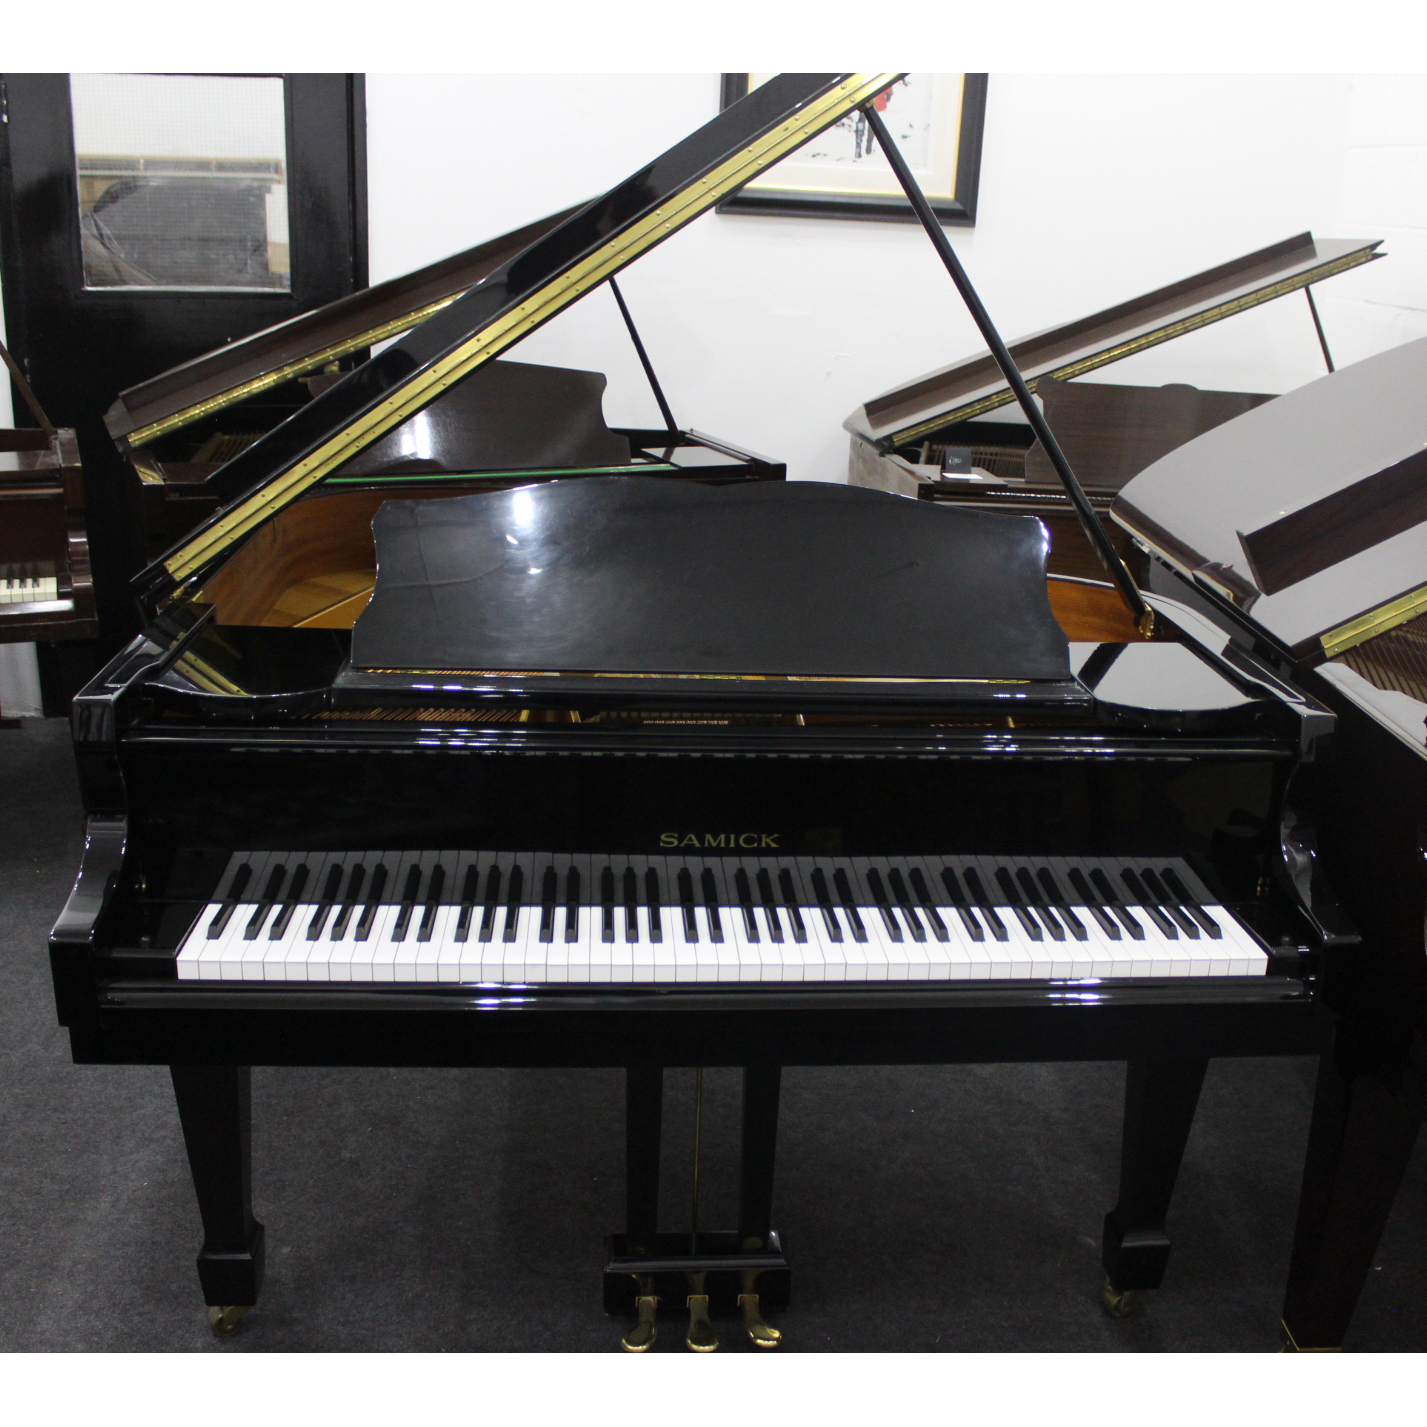 sammick-black-polyester-baby-grand-piano-by-sherwood-phoenix-pianos-2